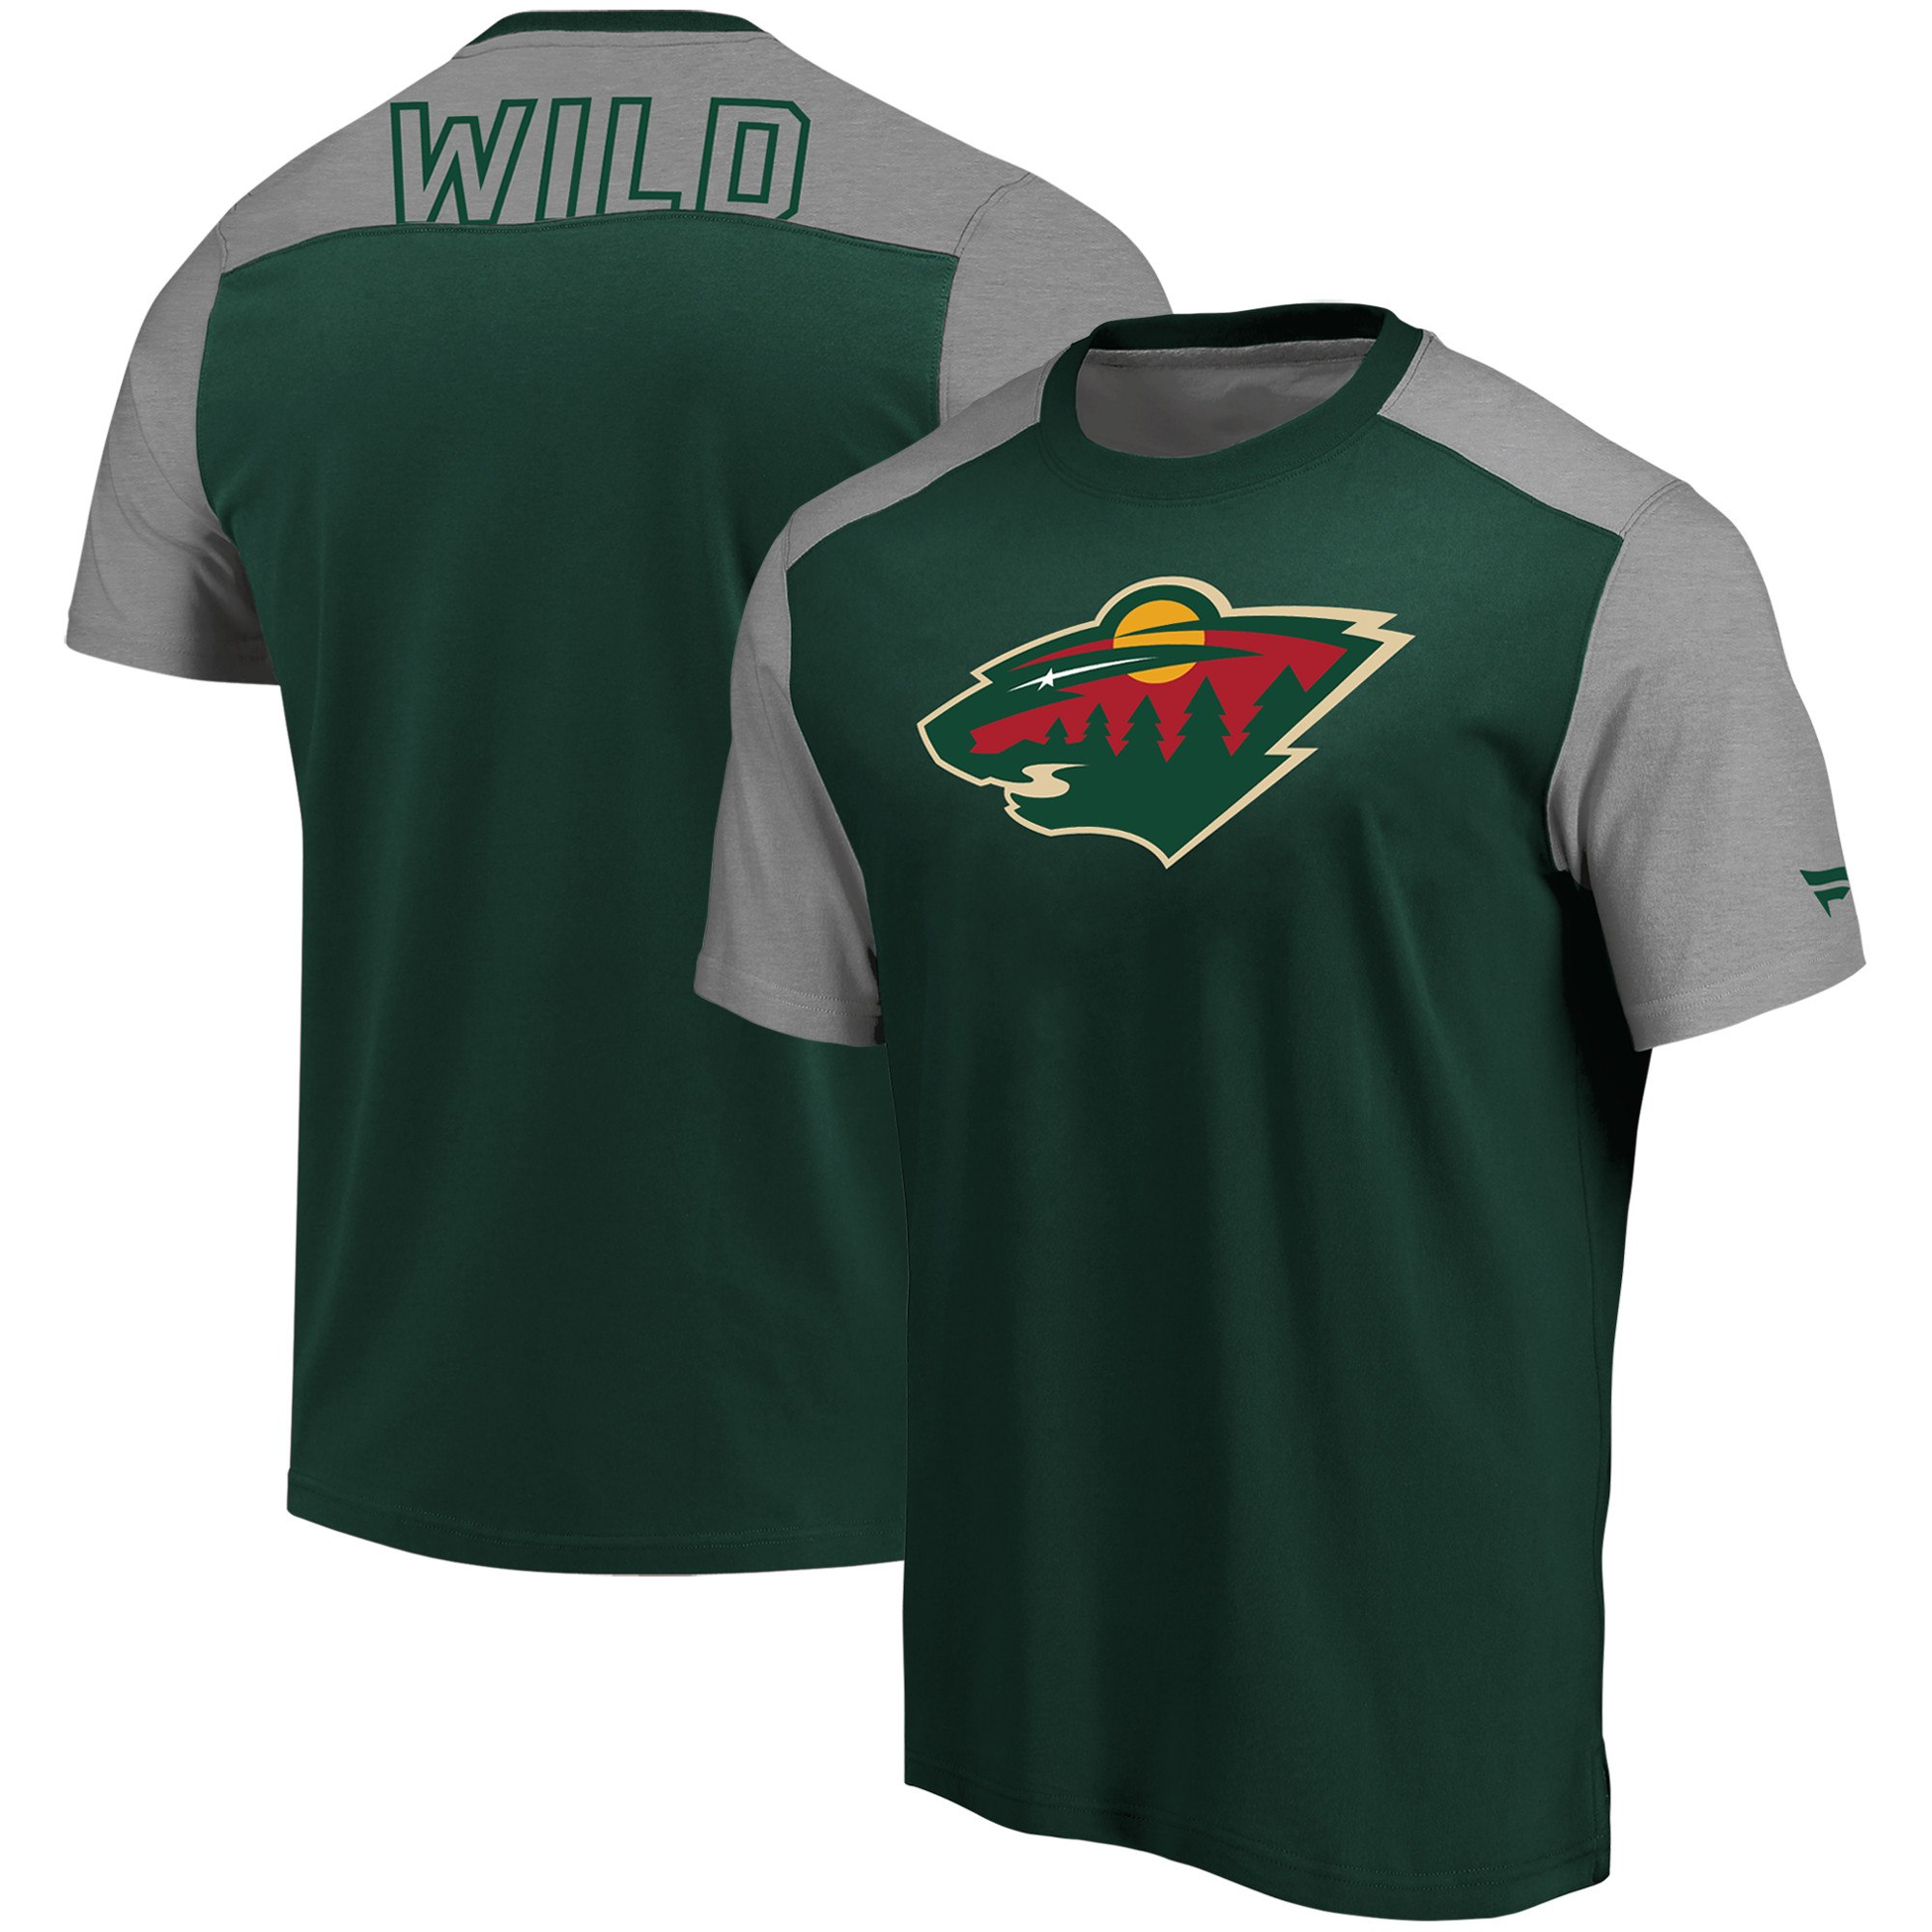 Minnesota Wild Fanatics Branded Iconic Blocked T-Shirt GreenHeathered Gray